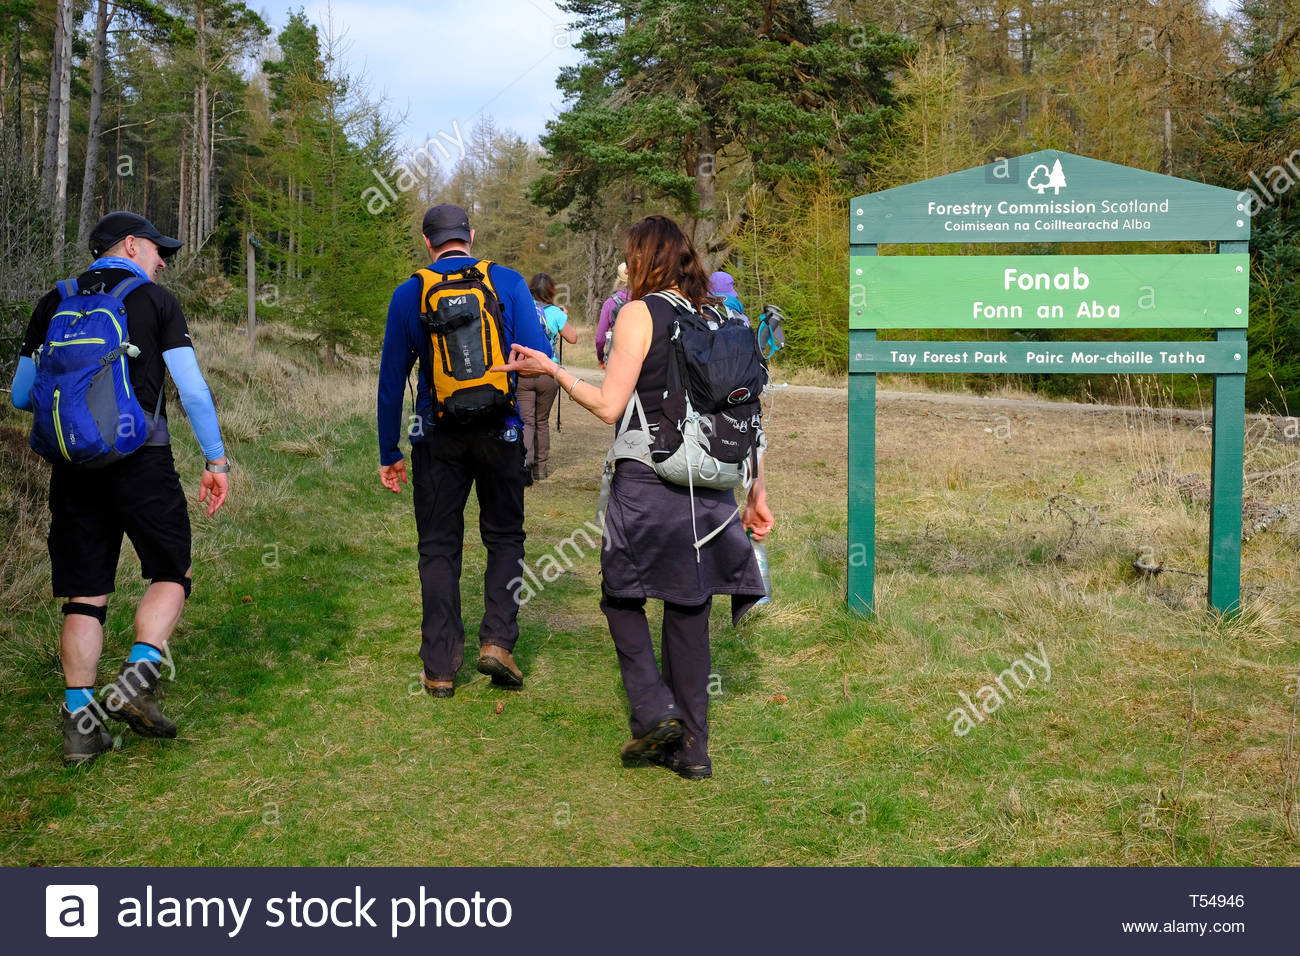 Walkers entering the Tay Forest Park as part of the Rob Roy Way, Perthshire, Scotland - Stock Image